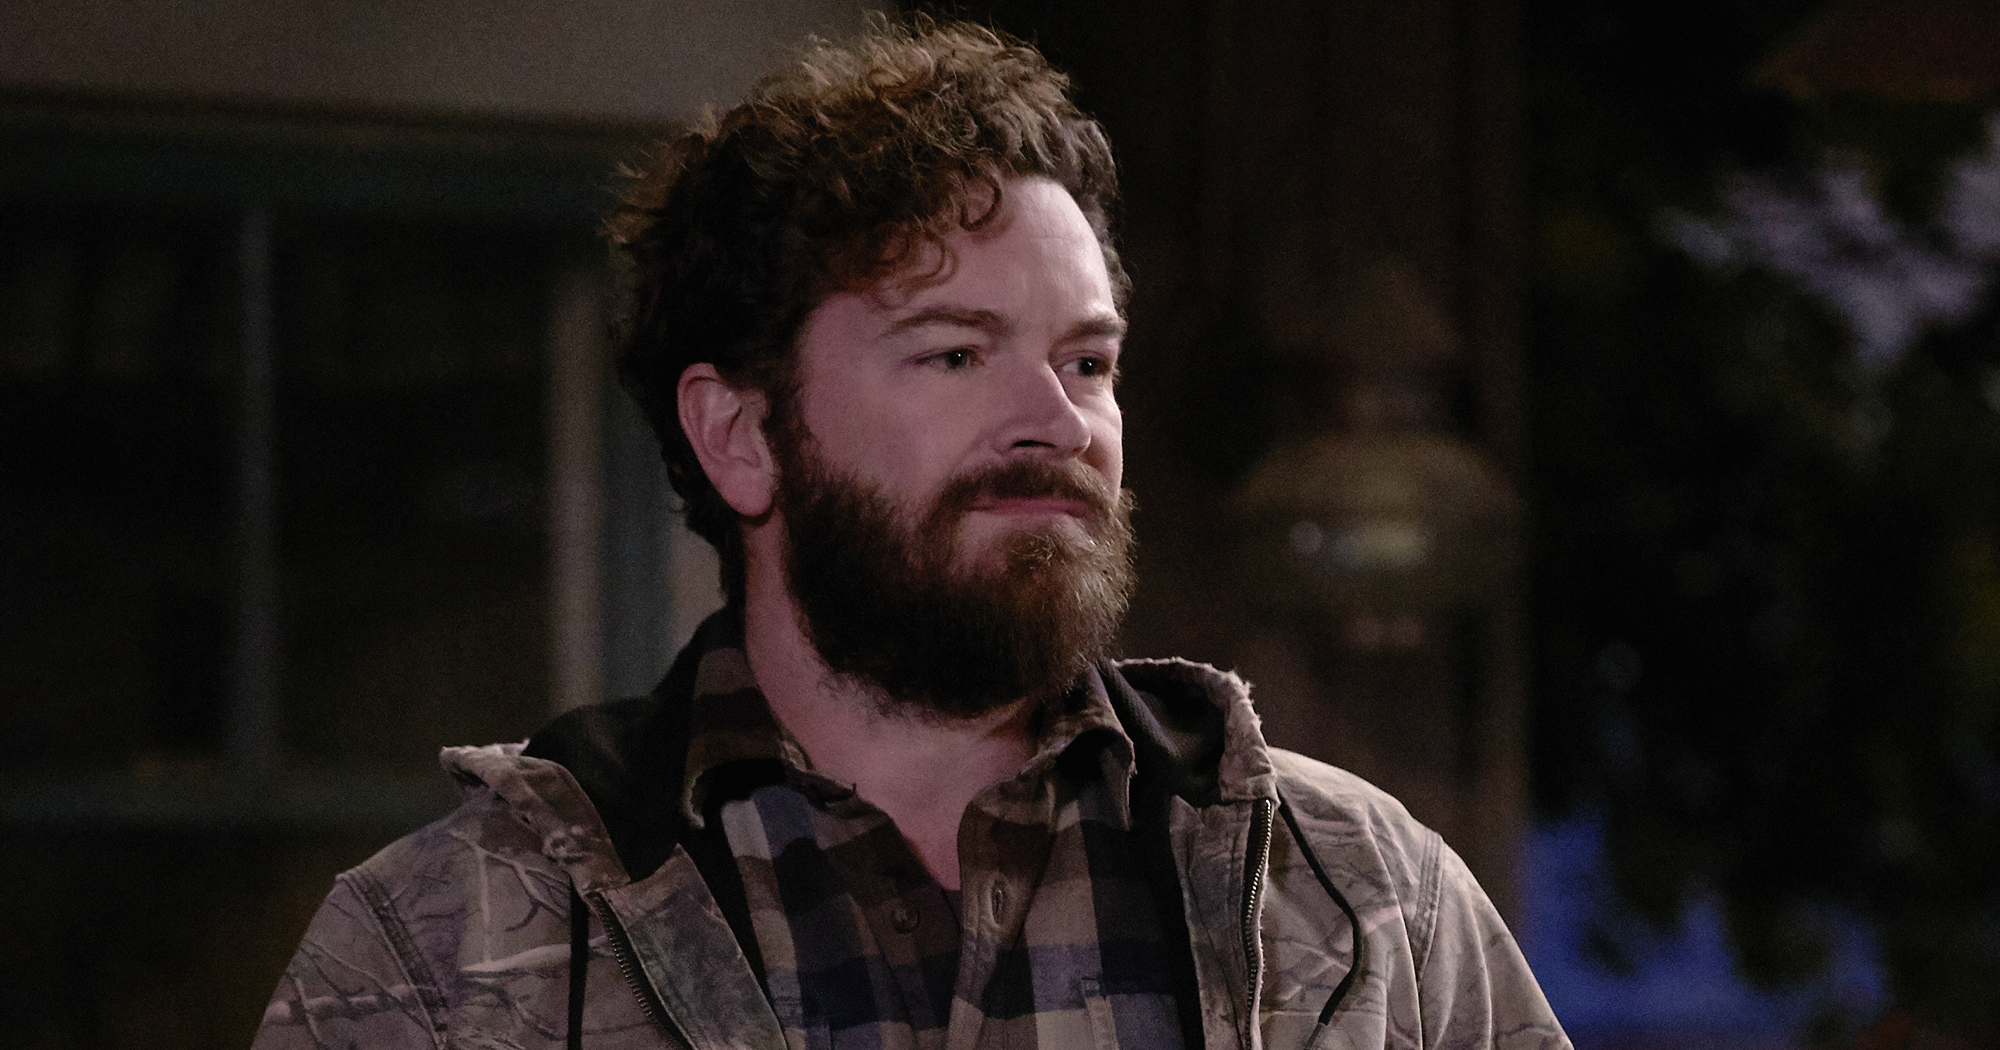 danny masterson - photo #13